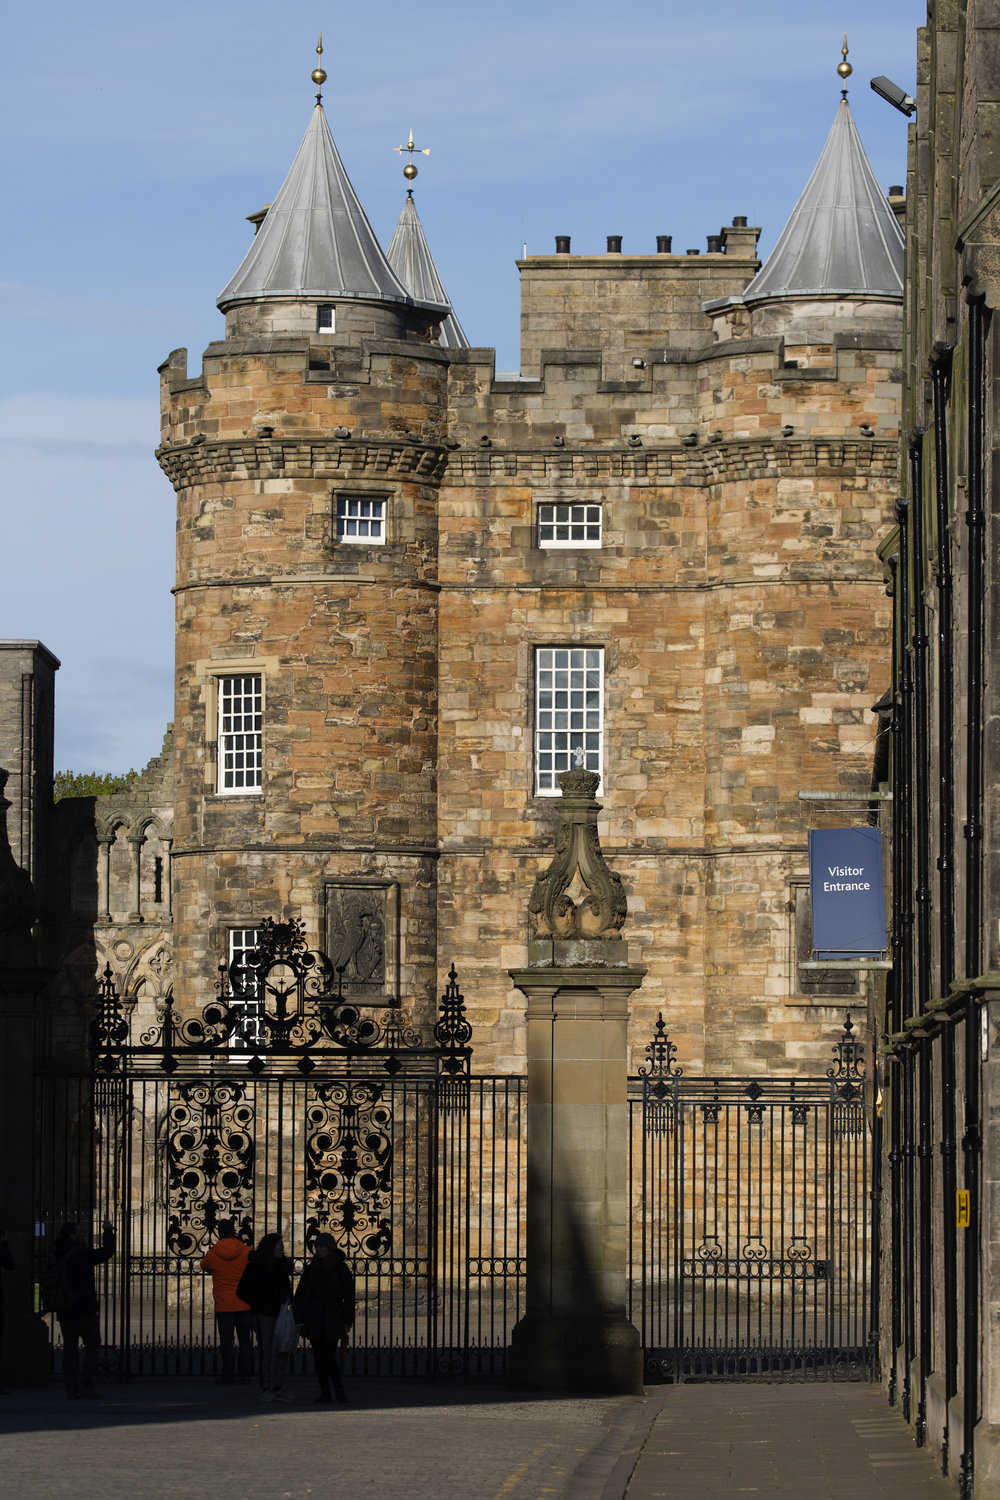 The Palace of Holyroodhouse.